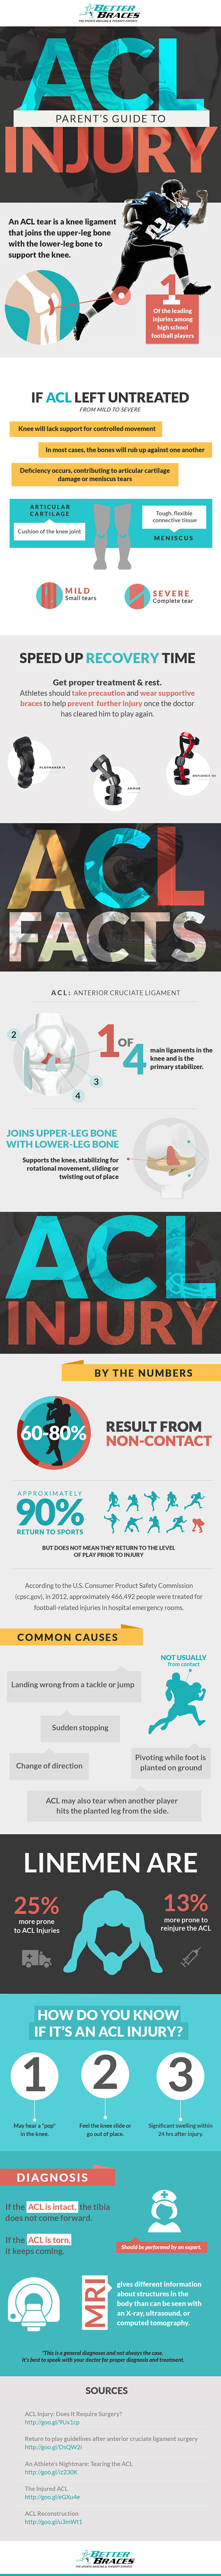 ACL Infographic